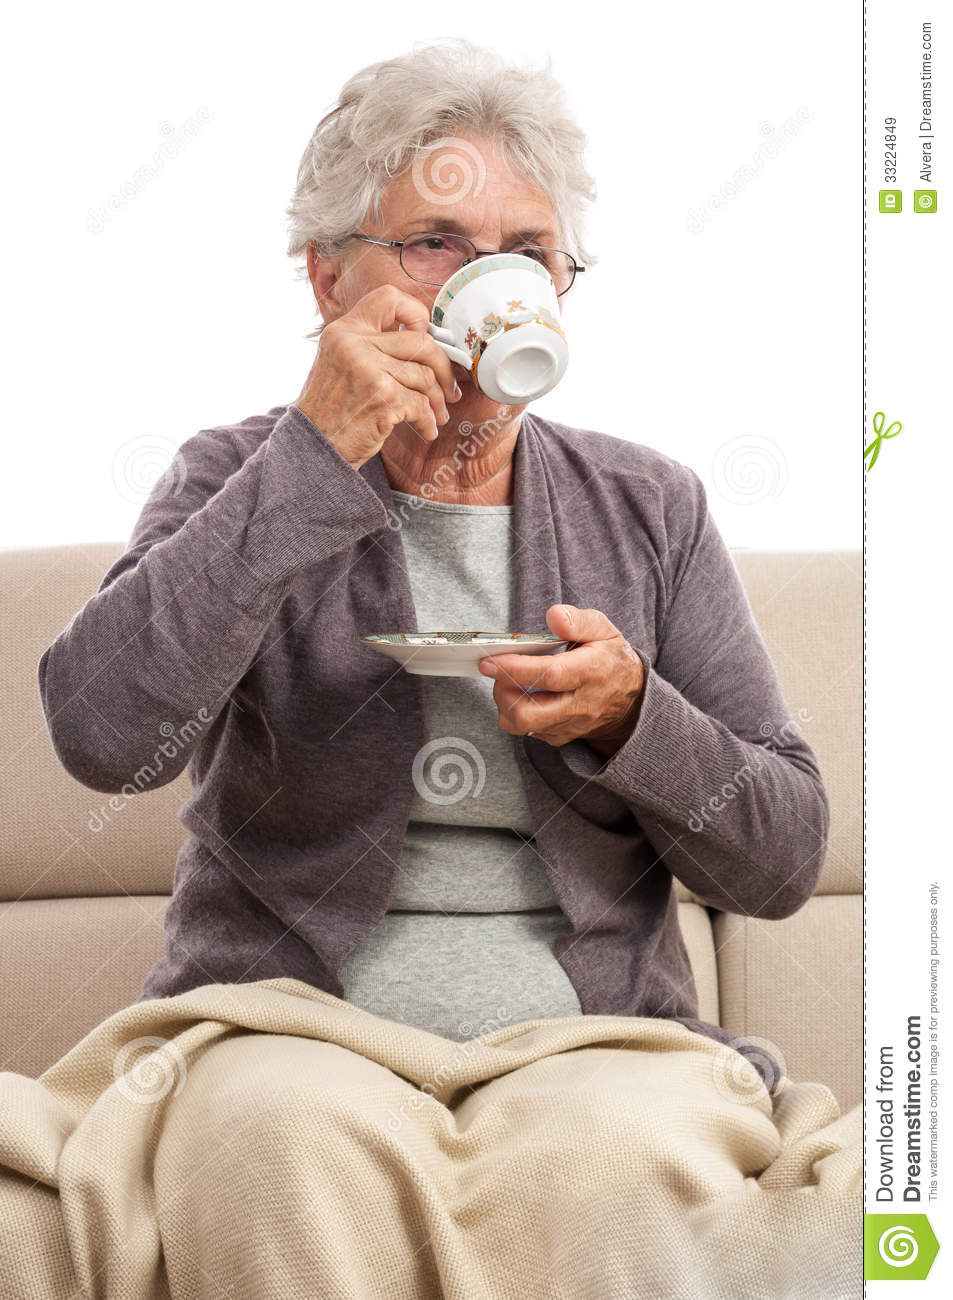 Site Analysis Report moreover Aspiringwalls co moreover Spanish Style Home California also Pond Mediterranean Patio Chicago moreover Royalty Free Stock Images Old Lady Drinking Coffee Indoor Woman Cup Tea Isolated White Image33224849. on southern interior designers